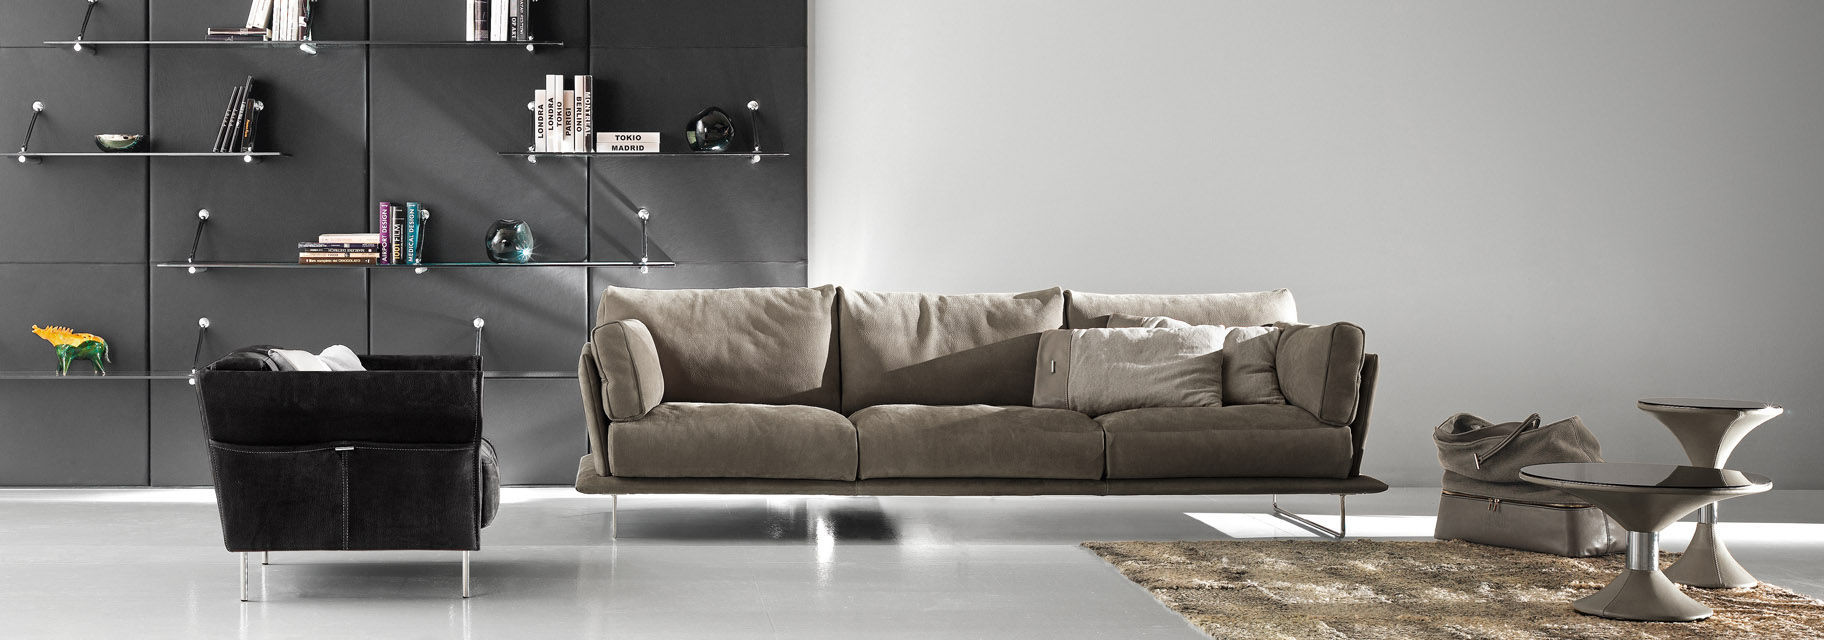 Leather Corner Sofa With Metal Legs